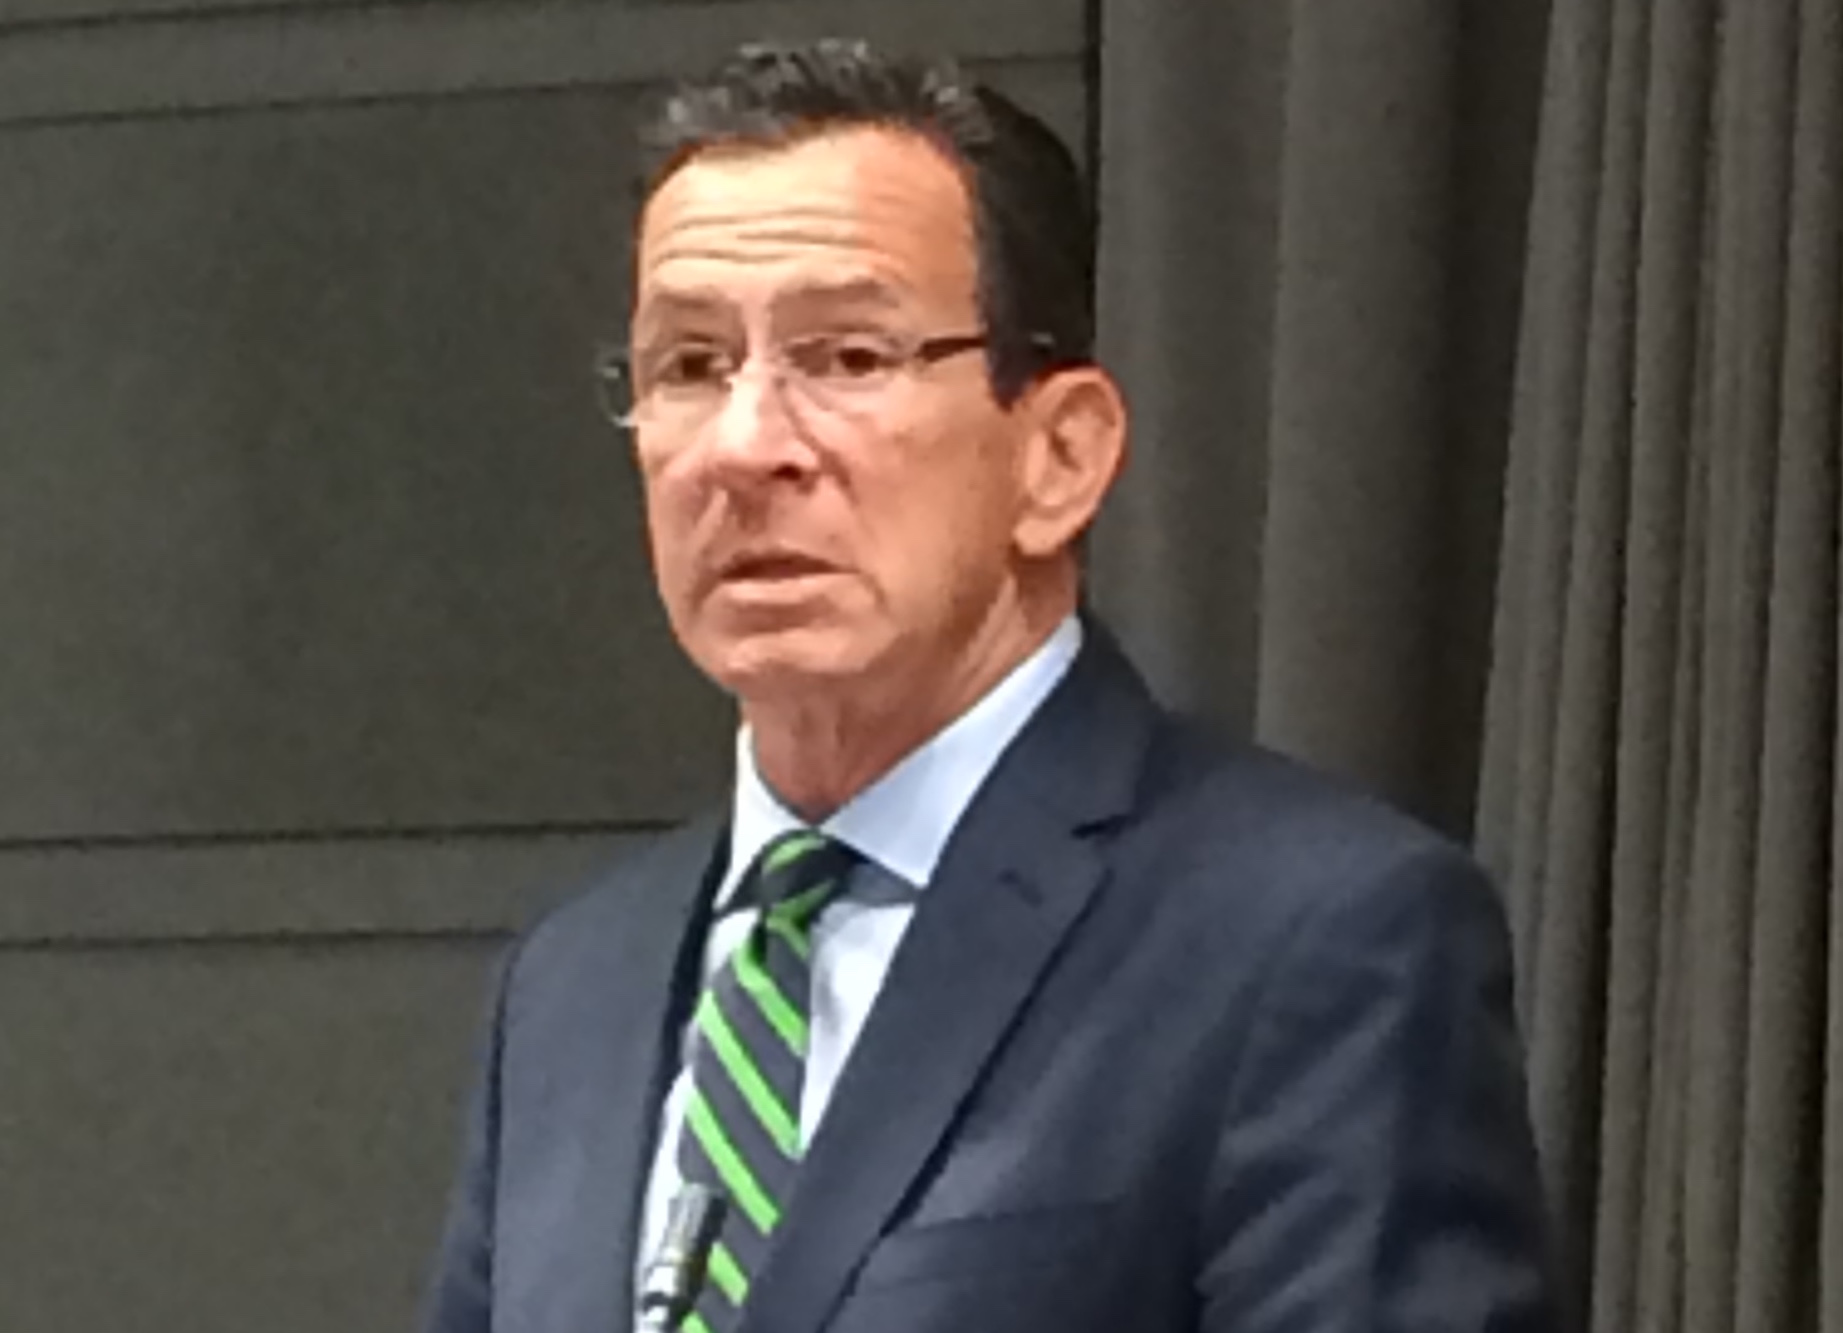 As criticism mounts, Malloy defends education cuts to affluent towns